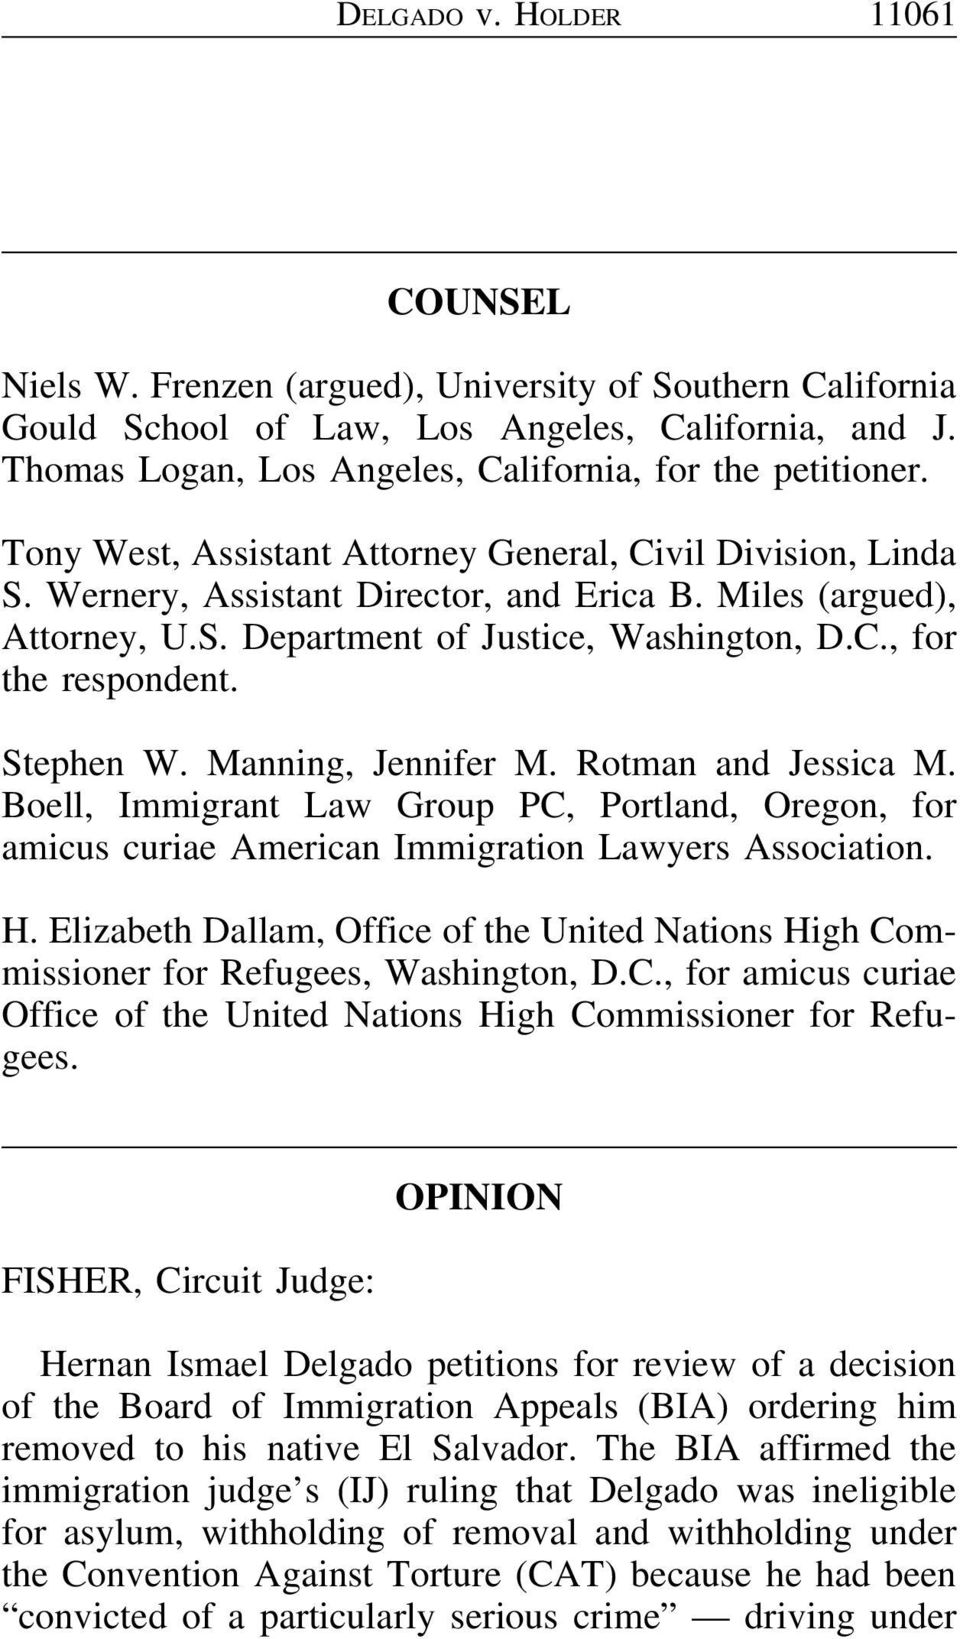 C., for the respondent. Stephen W. Manning, Jennifer M. Rotman and Jessica M. Boell, Immigrant Law Group PC, Portland, Oregon, for amicus curiae American Immigration Lawyers Association. H.